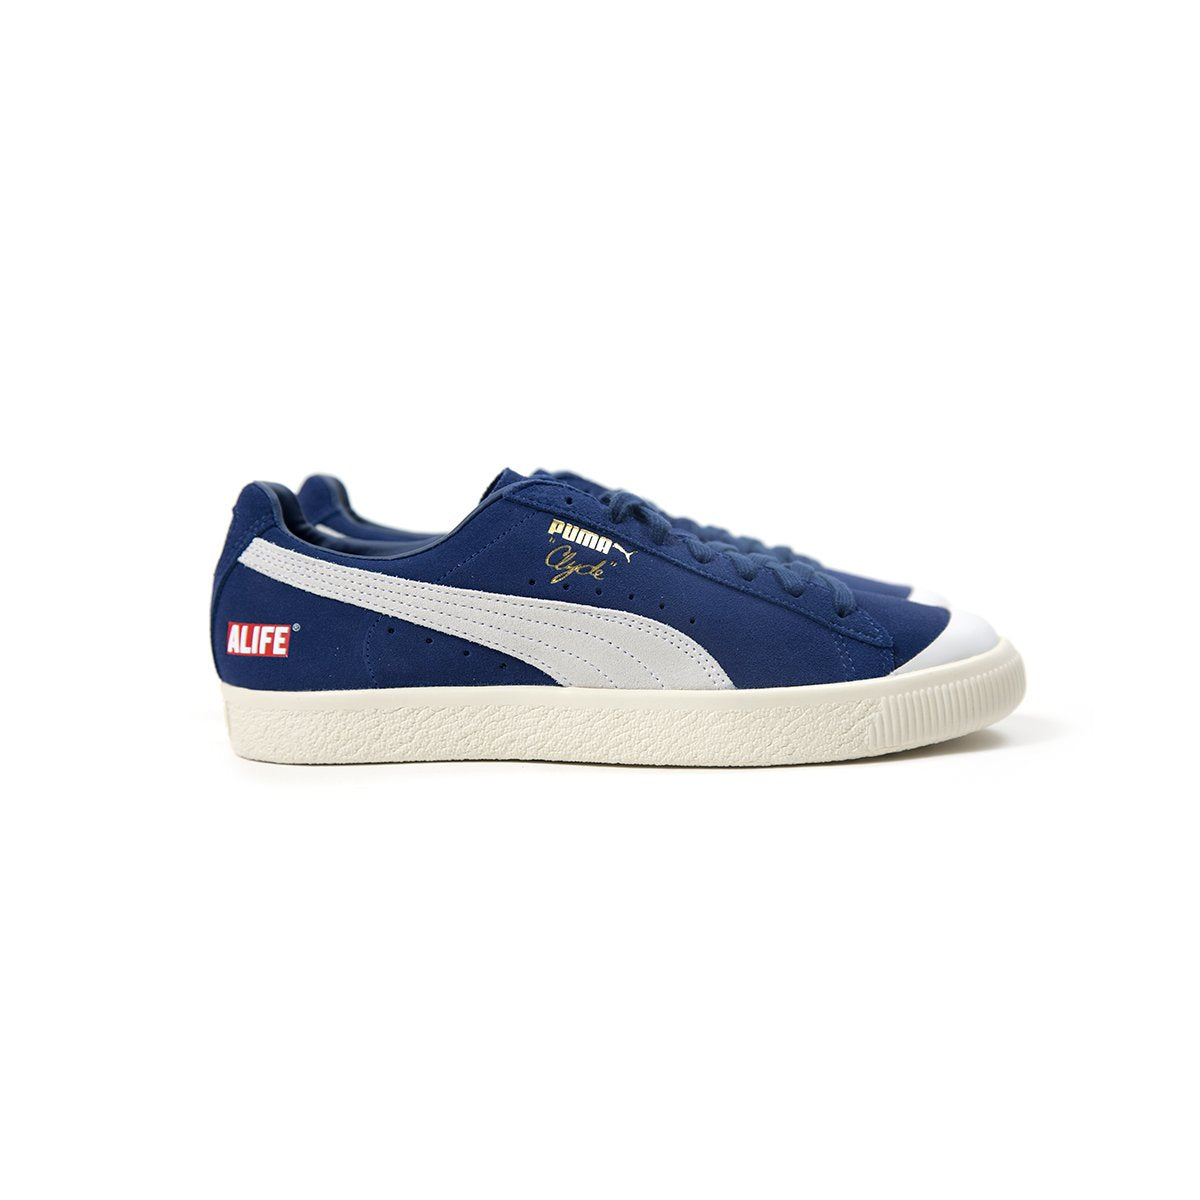 new product 9aac7 509d6 ConceptsIntl | Puma Clyde RT Alife (Blue Depths-Puma White)